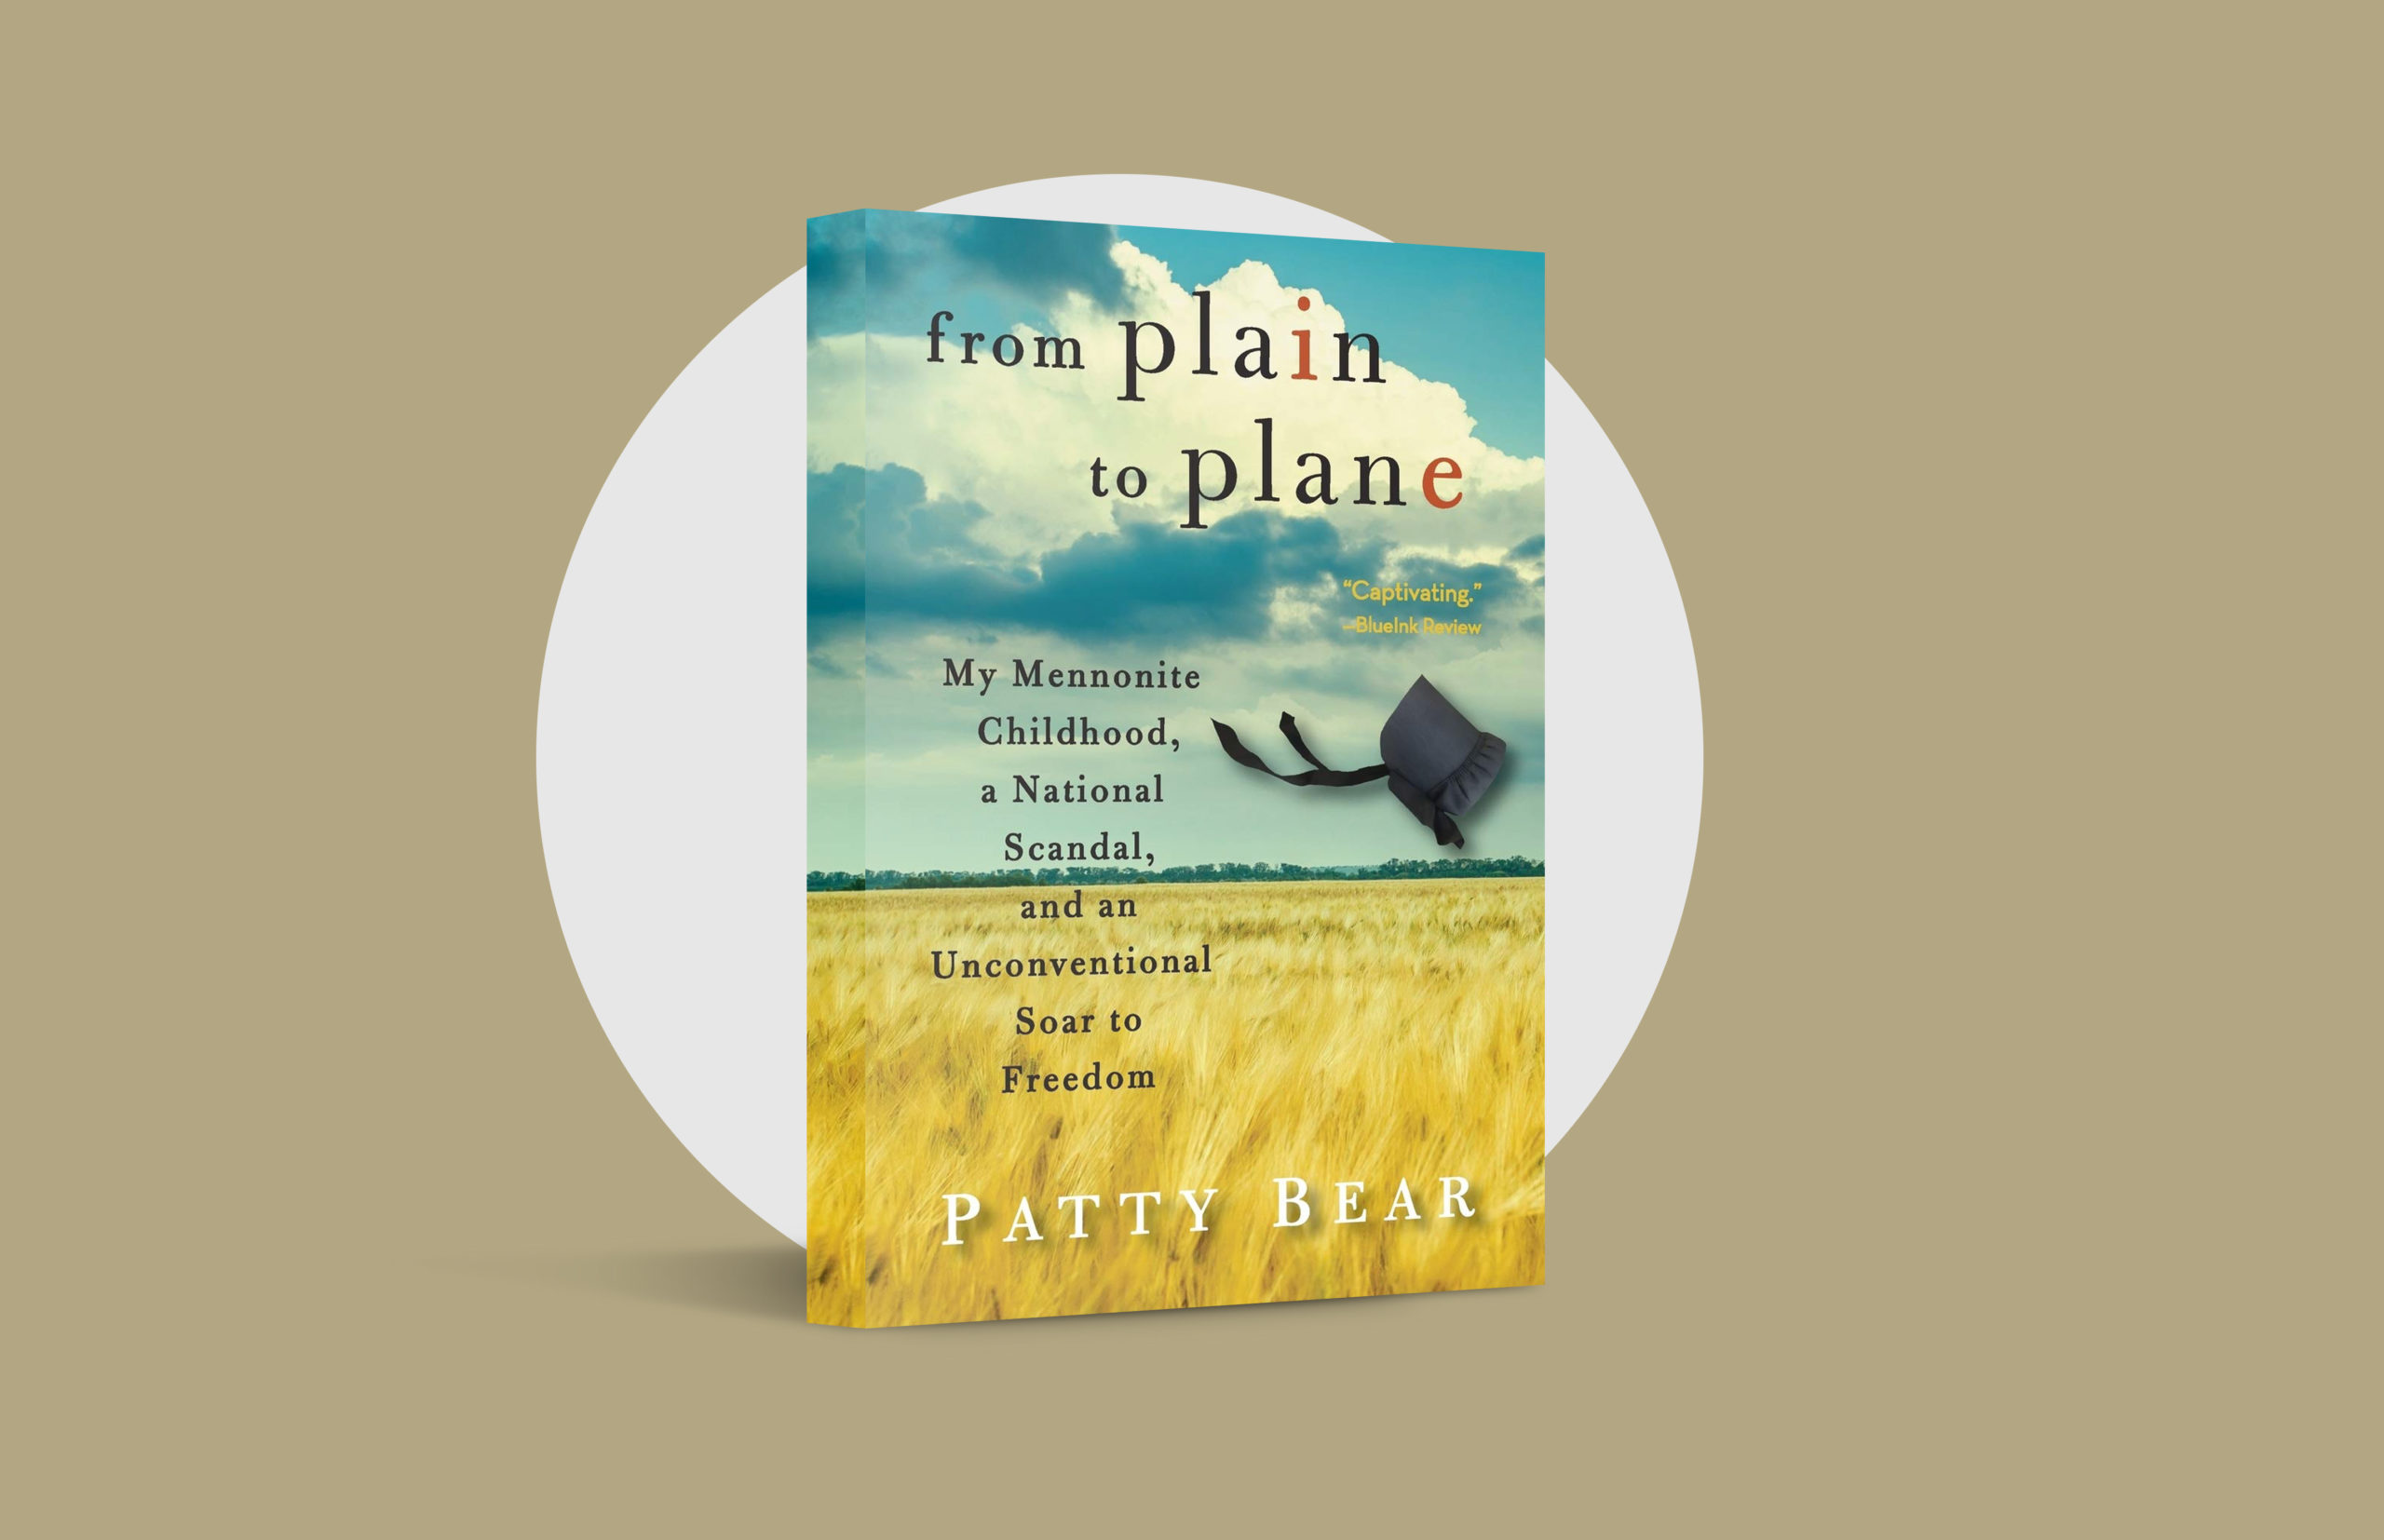 From Plain to Plane: My Mennonite Childhood, a National Scandal and an Unconventional Soar to Freedom, by Patty Bear (Barnstormer Press, 2021)